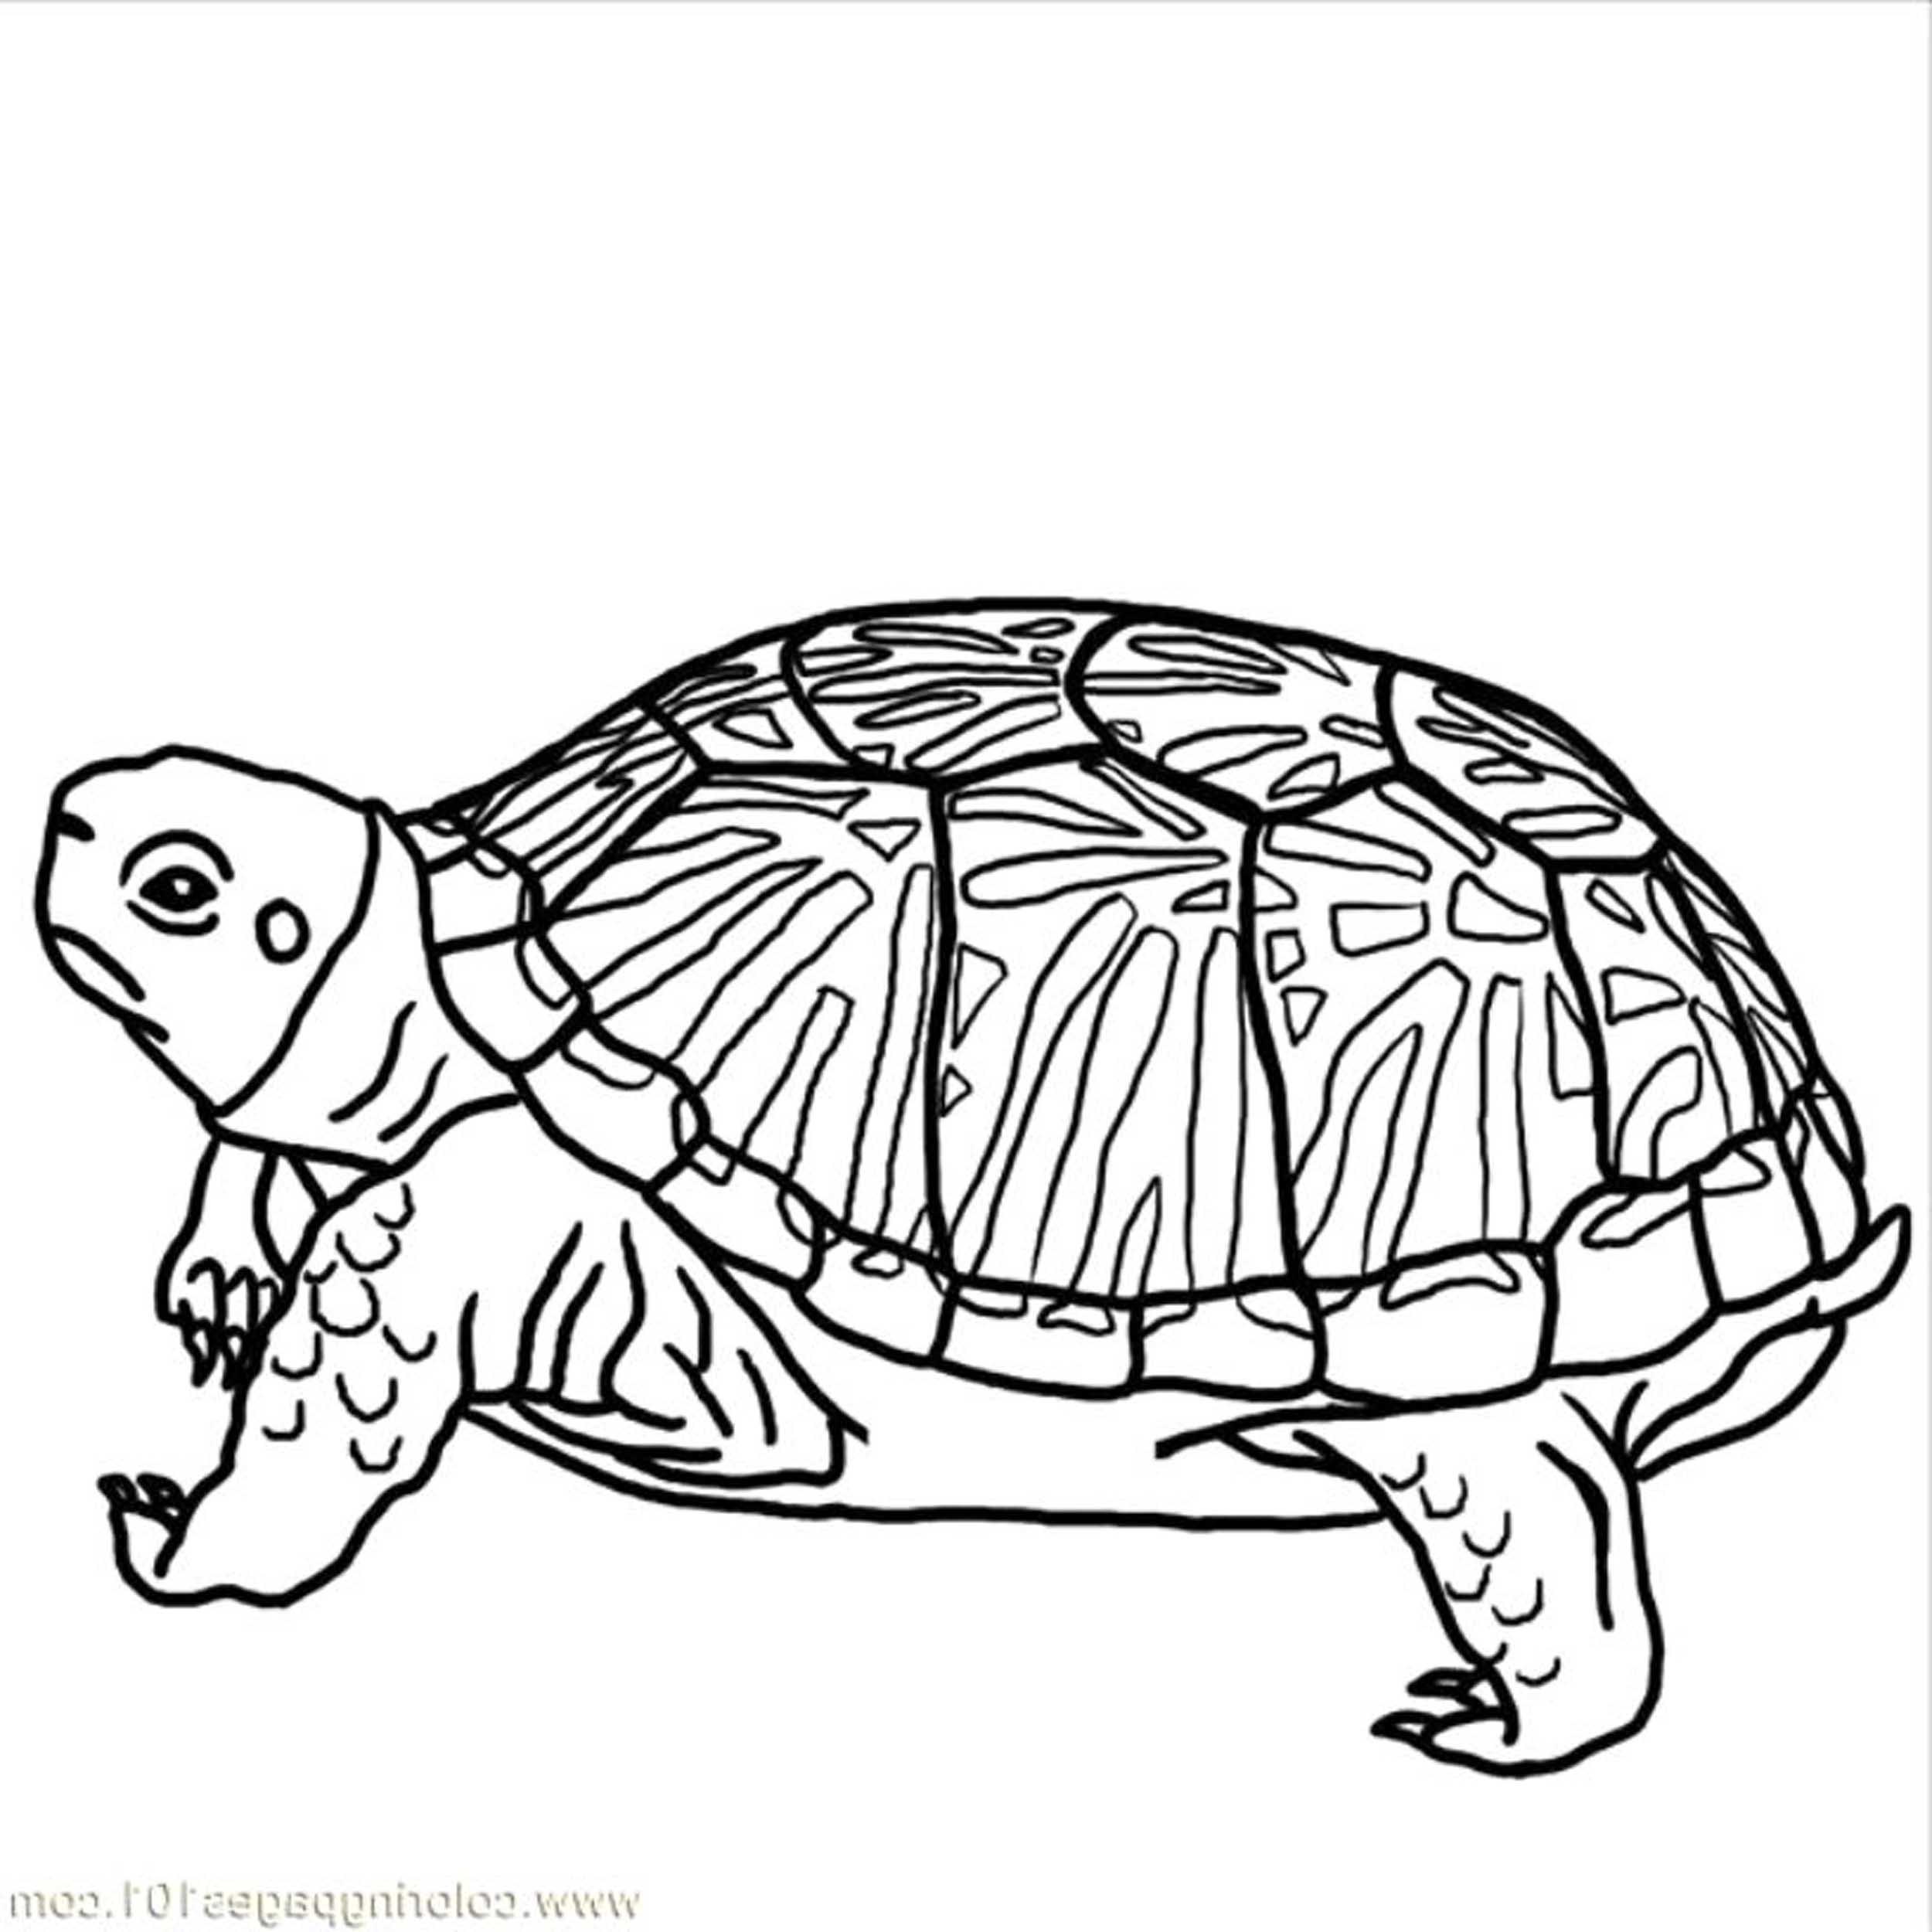 images of turtles to color turtles to print turtles kids coloring pages turtles of color to images